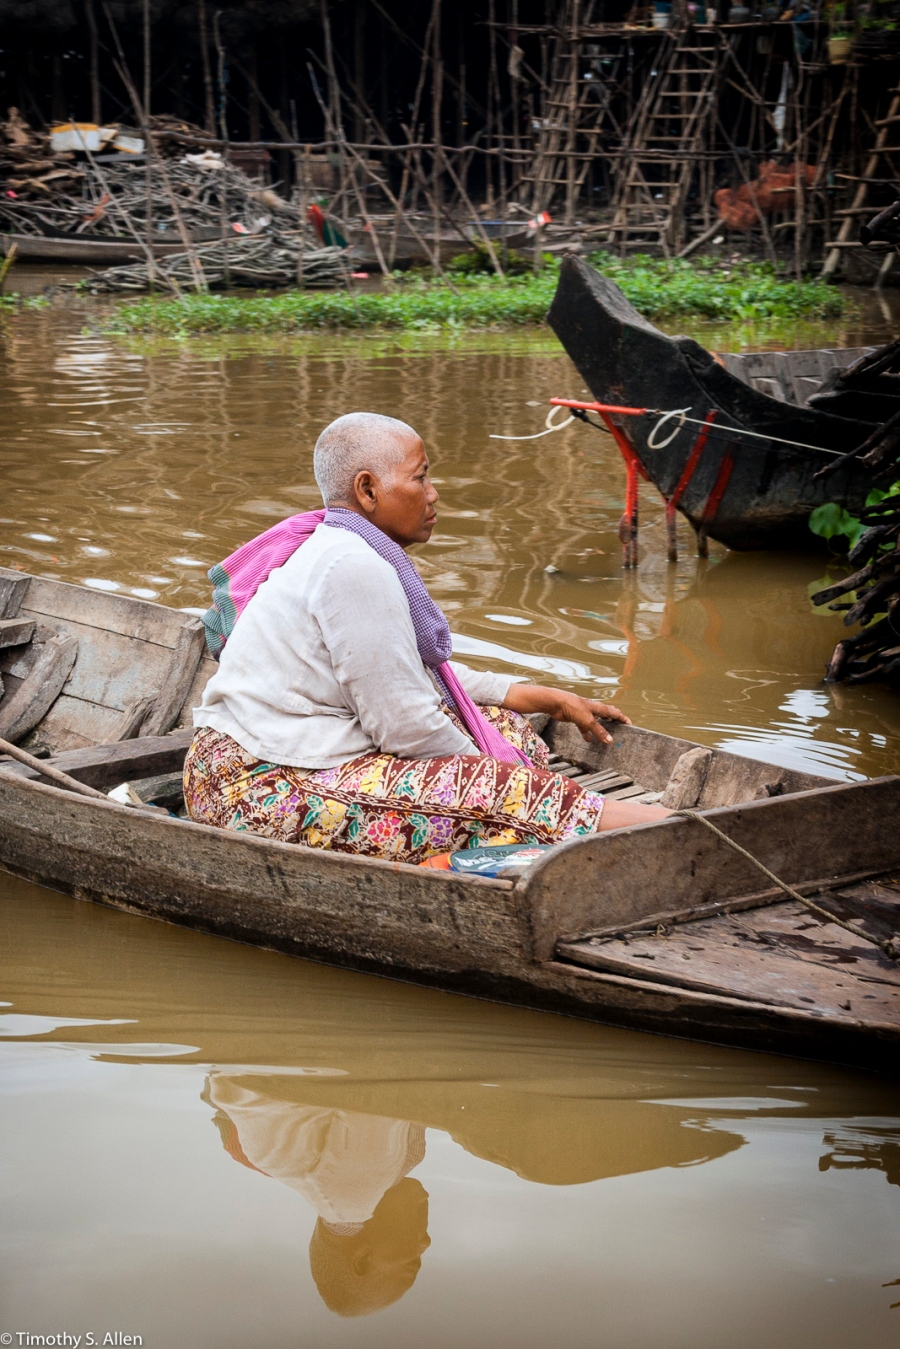 Older Women Floating in a Boat Cambodian Village on the Water January 17, 2012